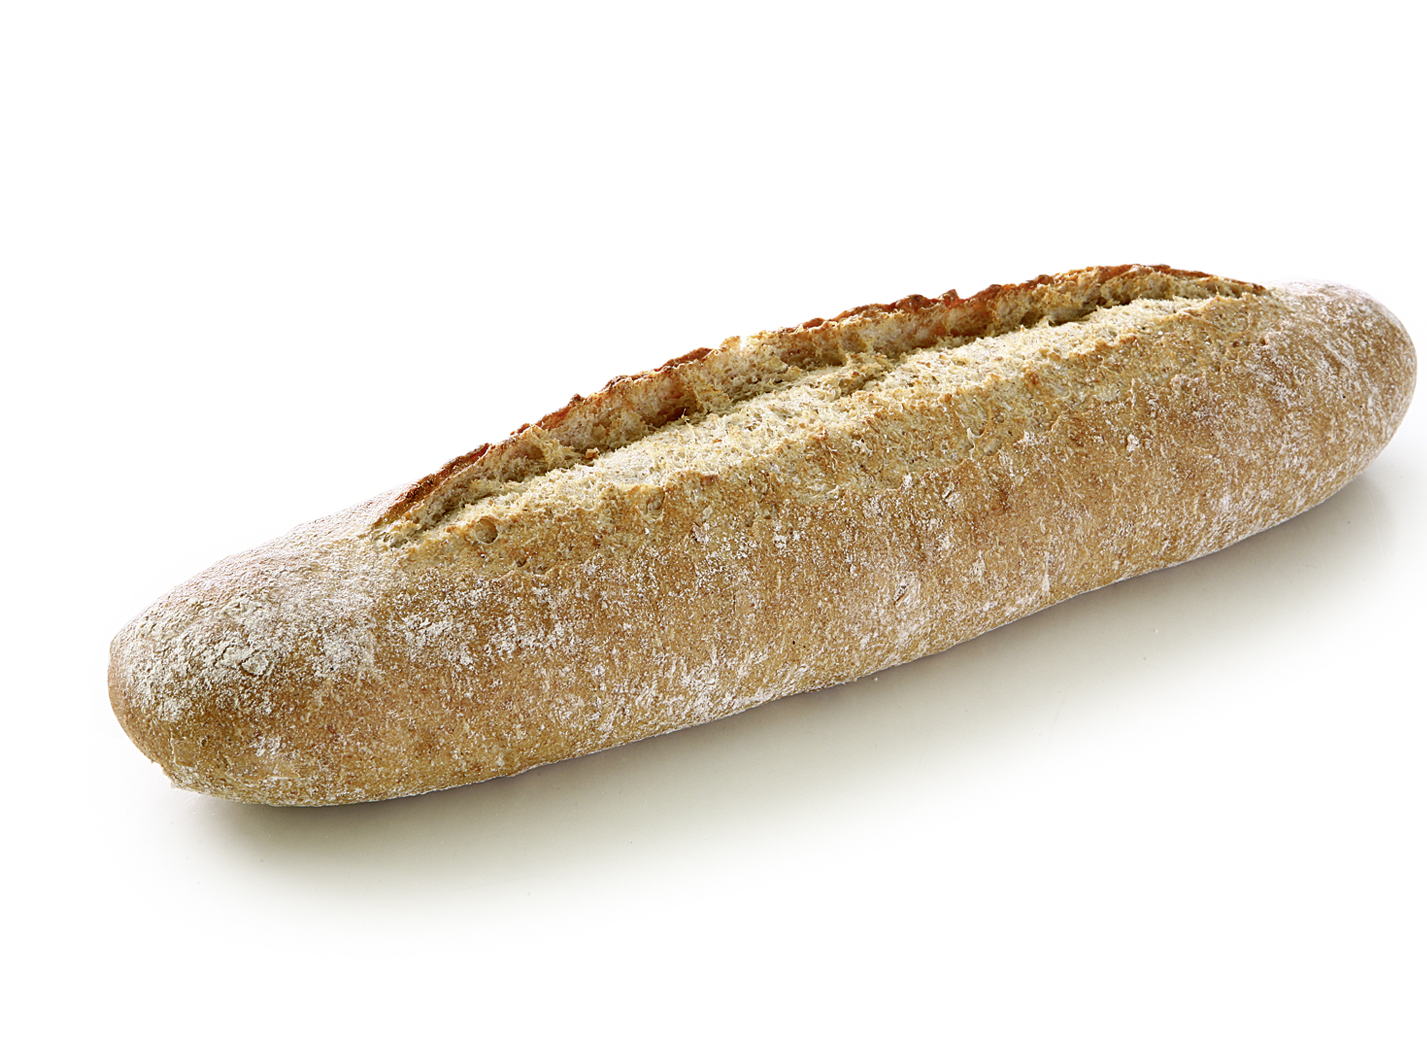 Natural Baguette with Ancient Grains - Spelt mixed bread with spelt flour, wholegrain spelt flour, emmer flour, perennial rye, sea salt and sour dough/ length: approx. 38 cm